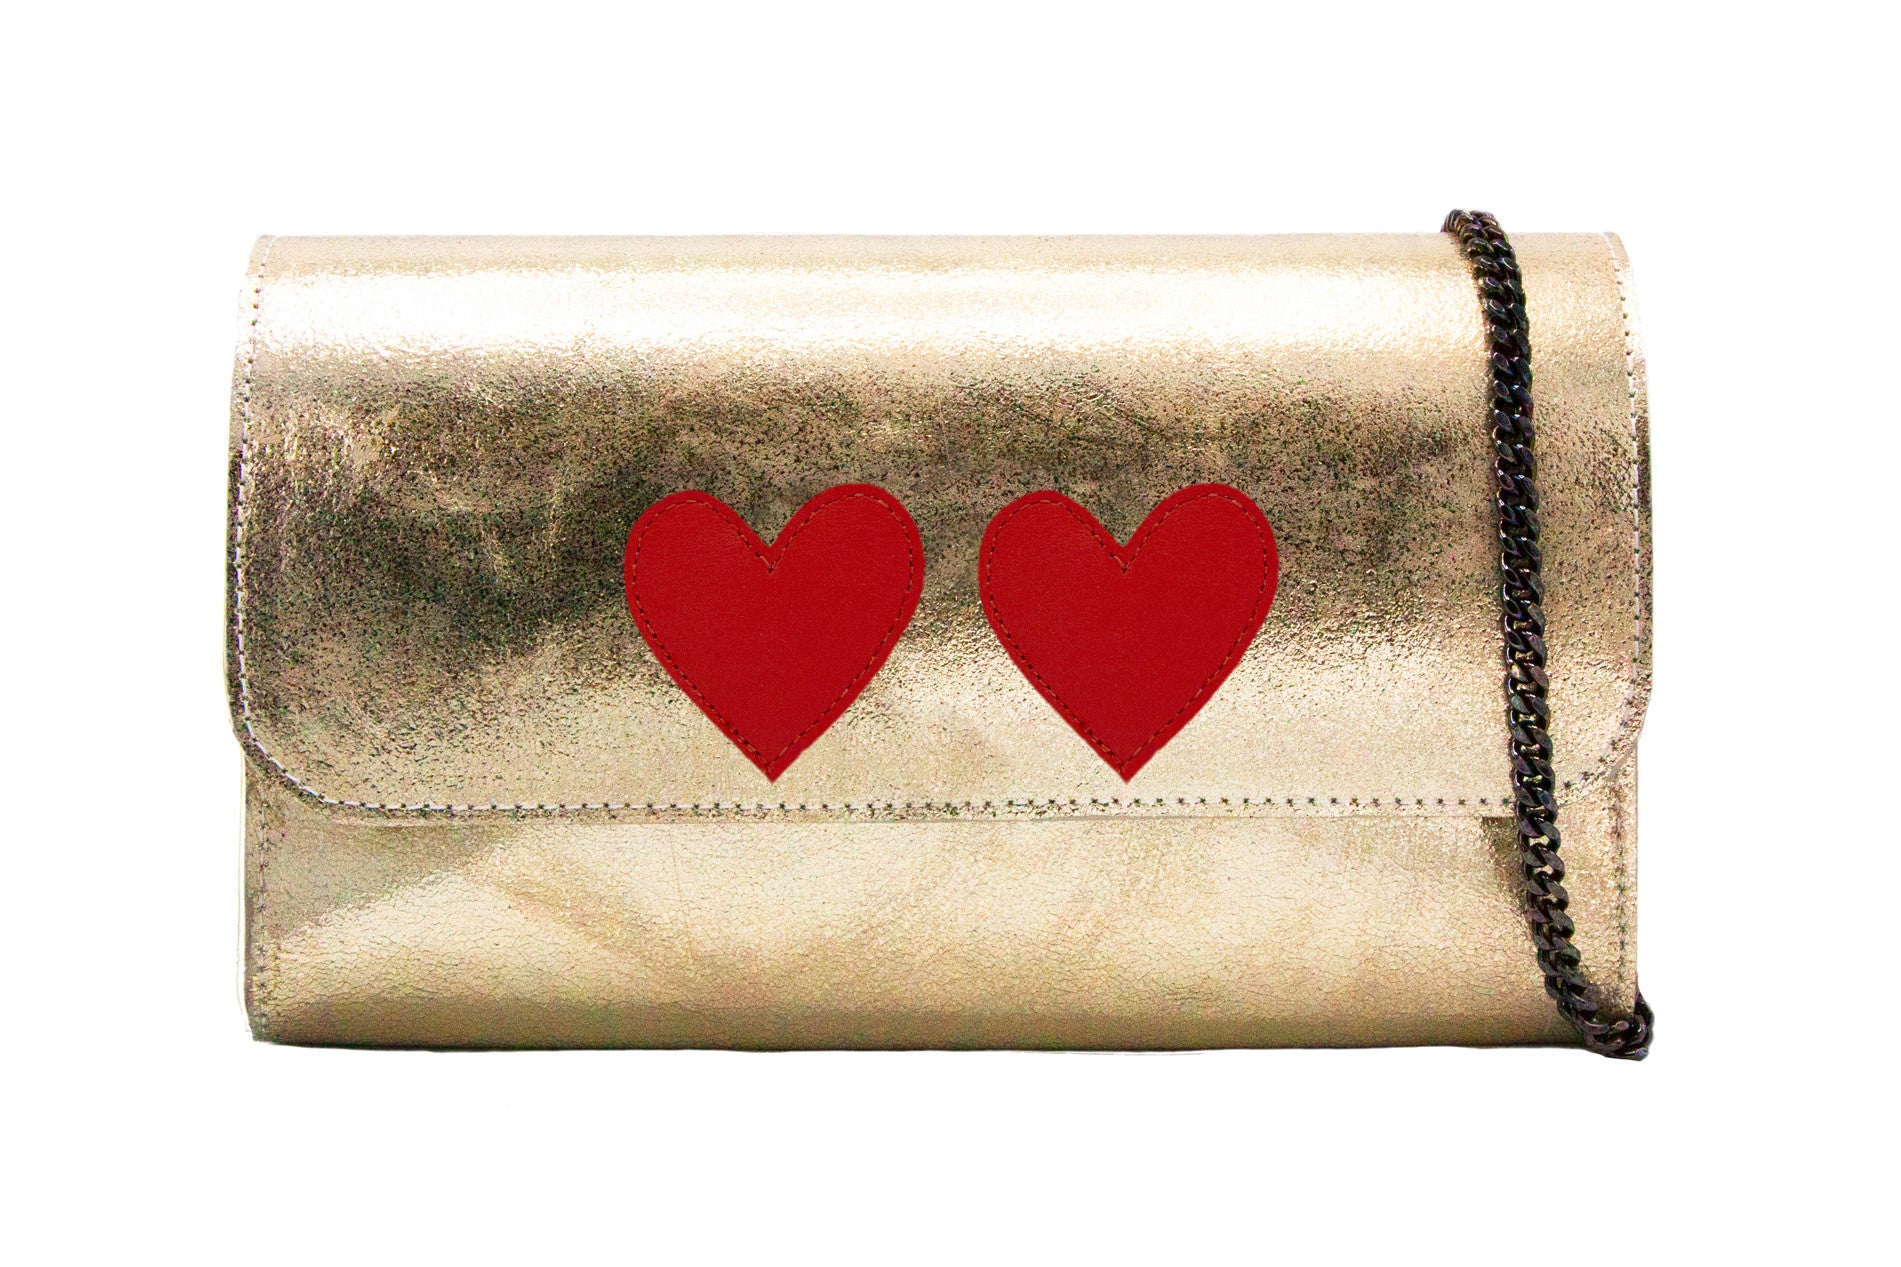 Mich Shoulder Bag Cracked Cracked Metallic Gold w/ 2 Red Hearts